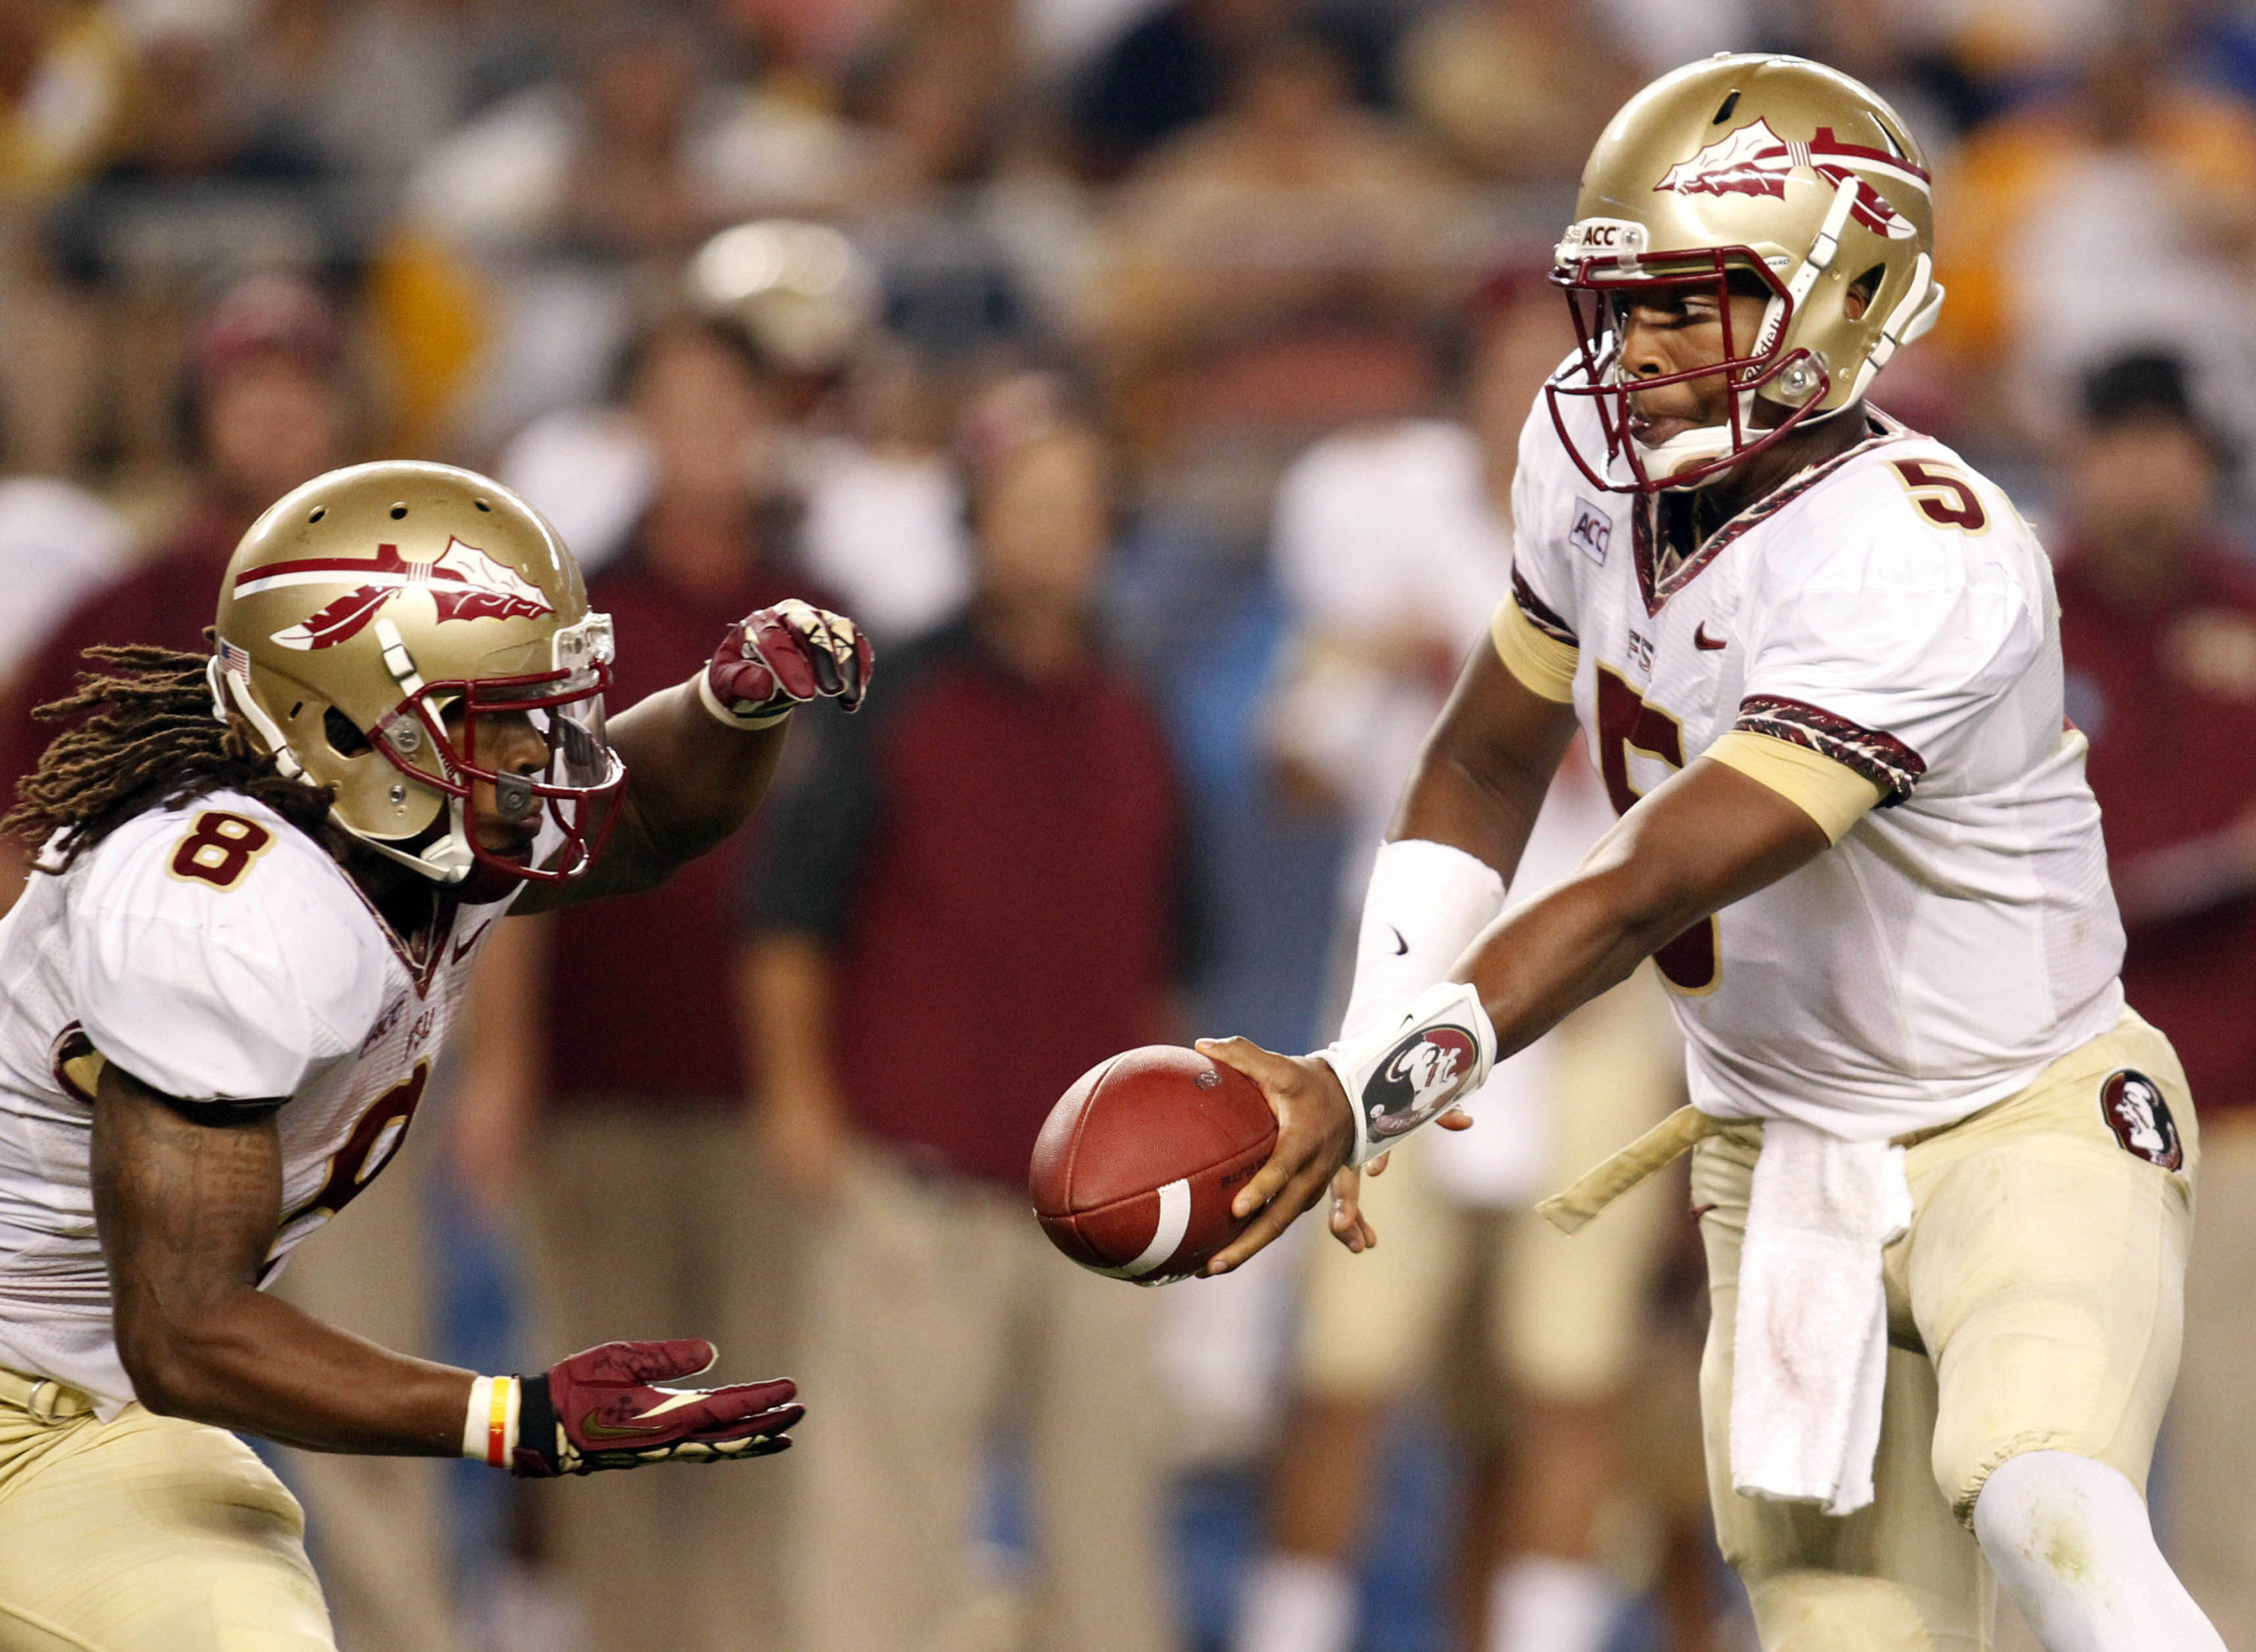 Florida State Seminoles quarterback Jameis Winston (5) hands off to running back Devonta Freeman (8) against the Pittsburgh Panthers during the second quarter at Heinz Field. Mandatory Credit: Charles LeClaire-USA TODAY Sports